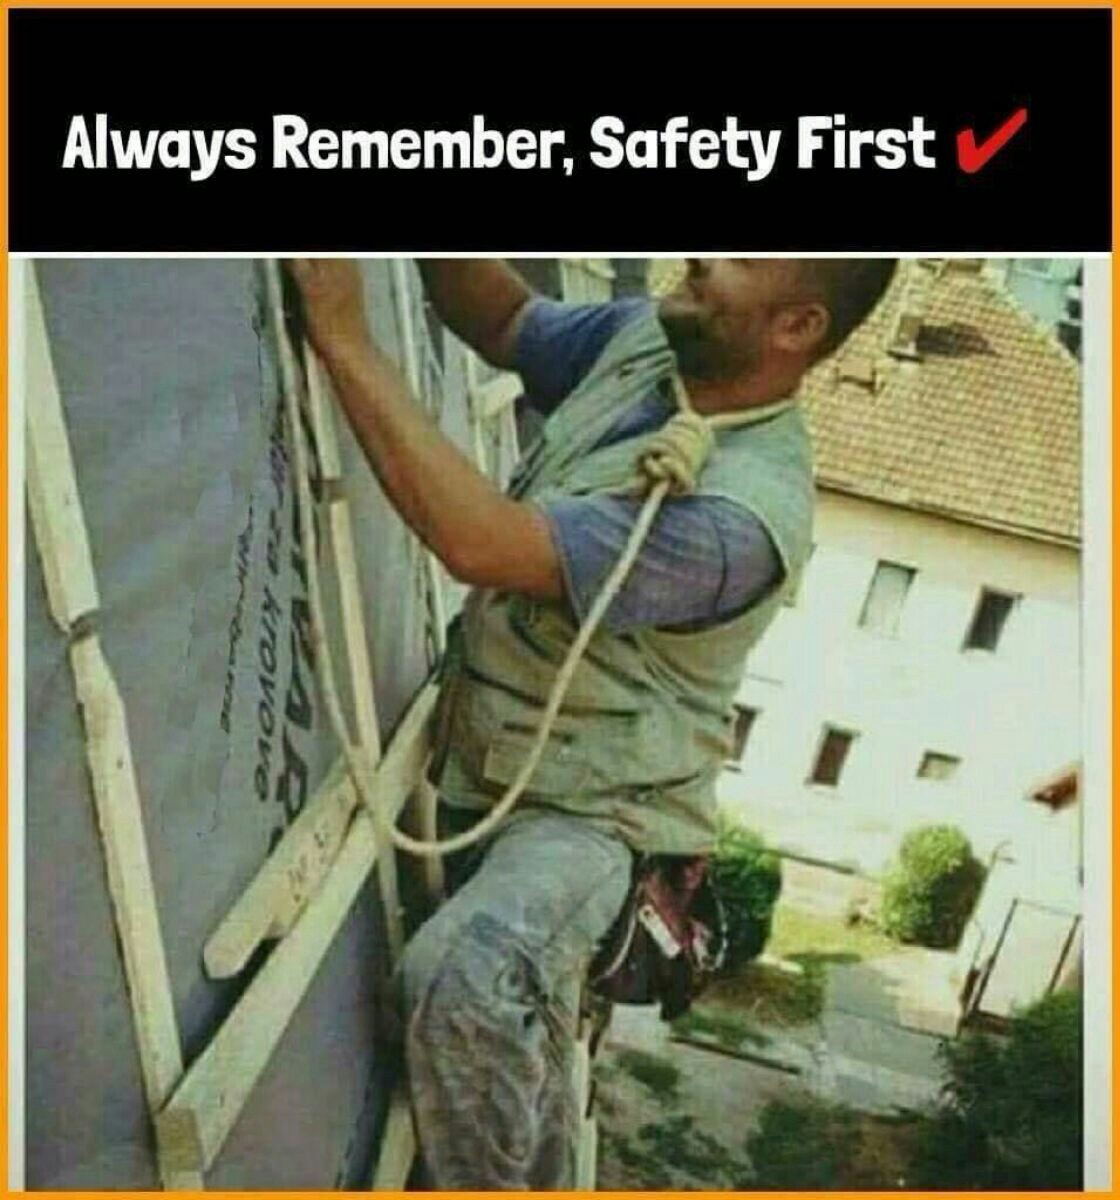 In case of falling, tie rope around neck to survive fall - meme